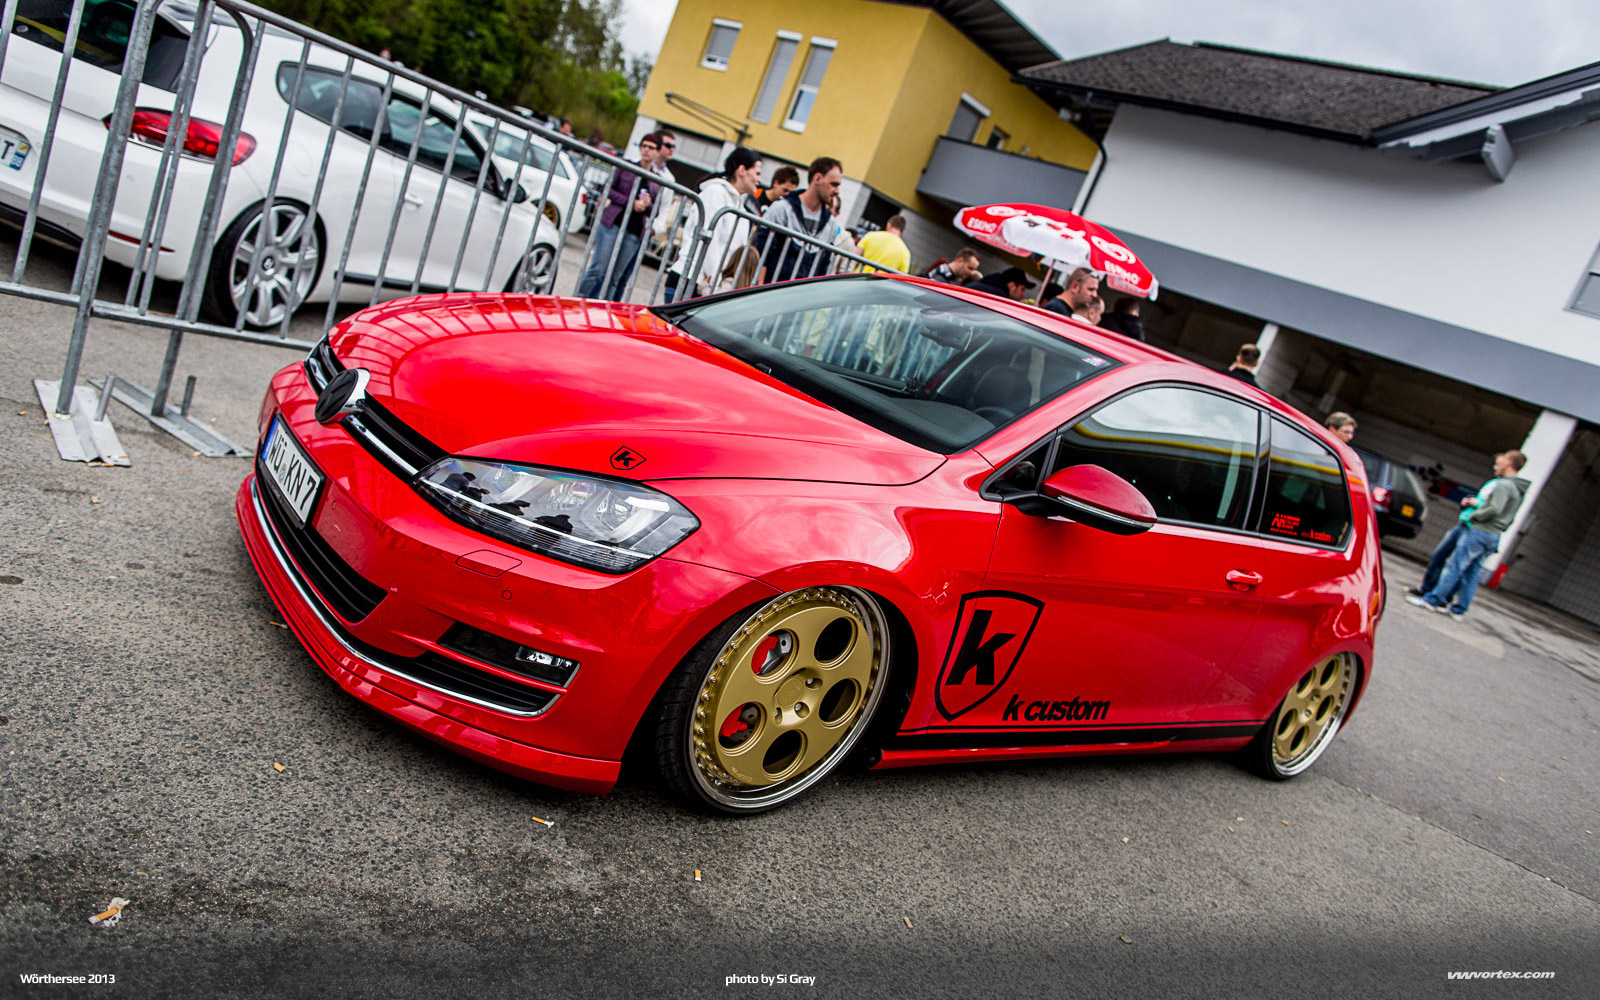 worthersee-2013-gallery-si-gray-011